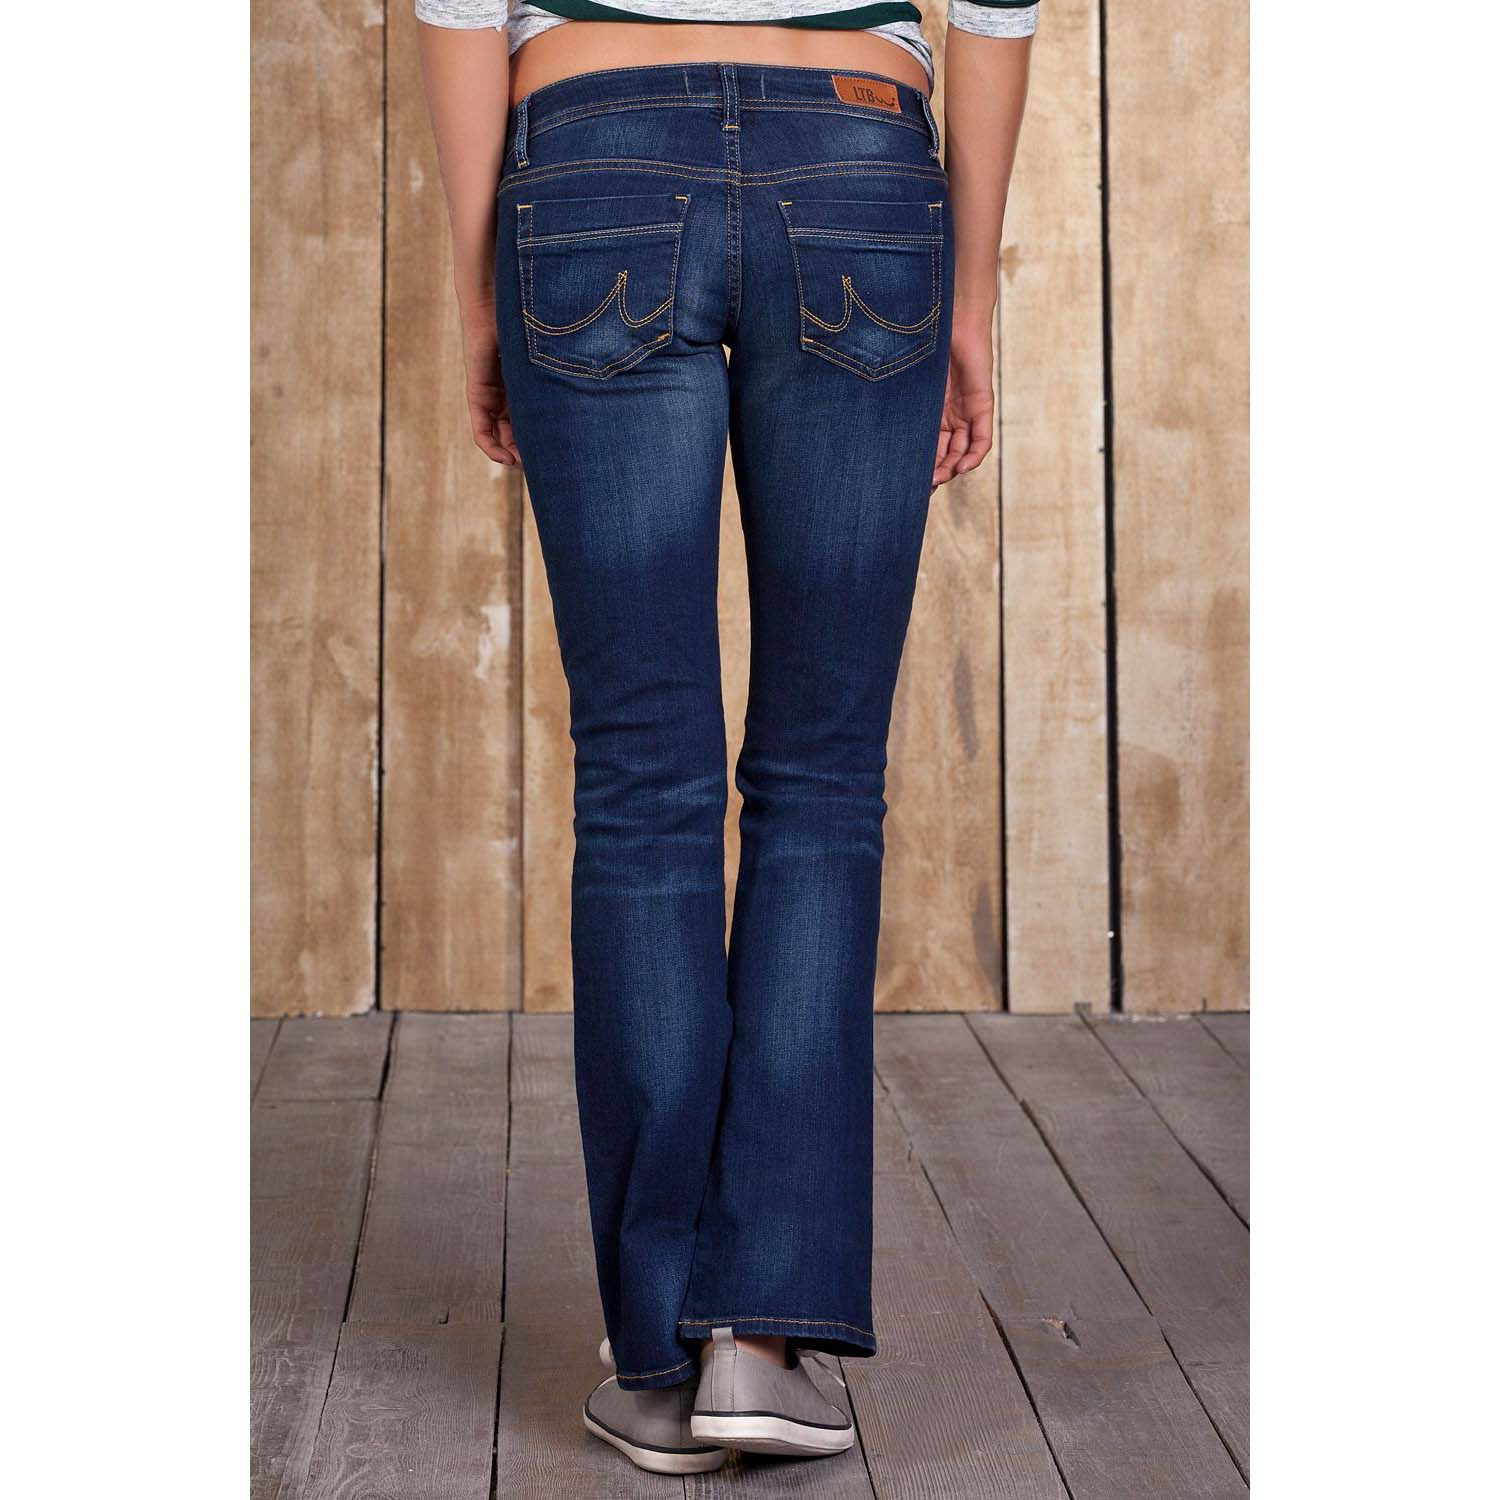 Ltb jeans valerie 5145 low rise bootcut